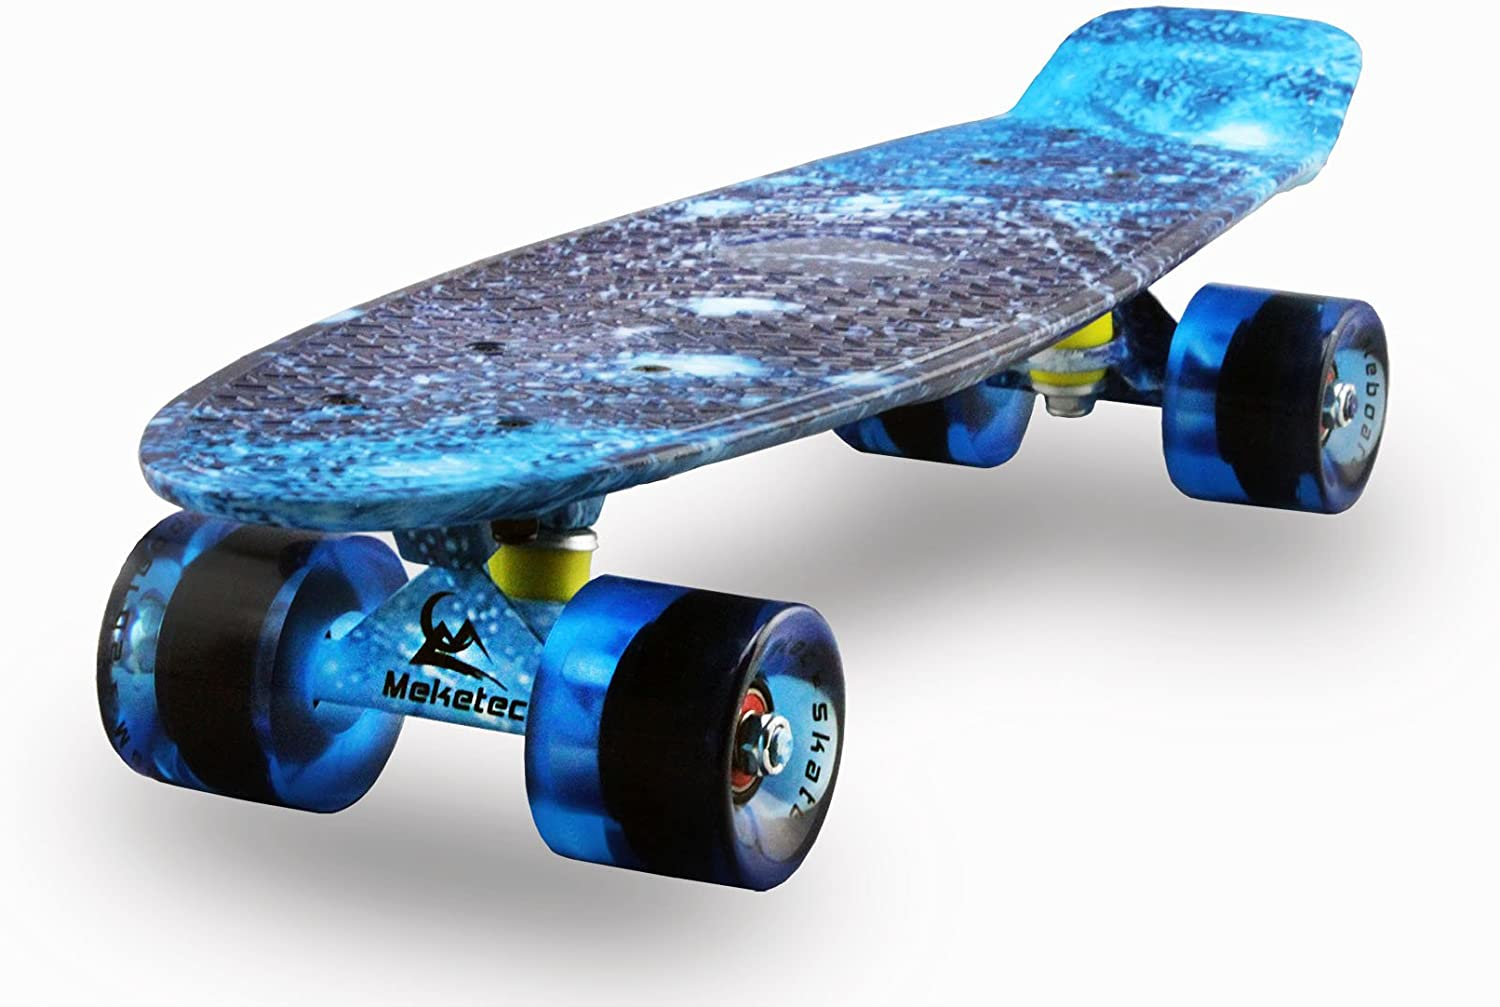 Meketec Complete 22 Inch Mini Cruiser for Kids